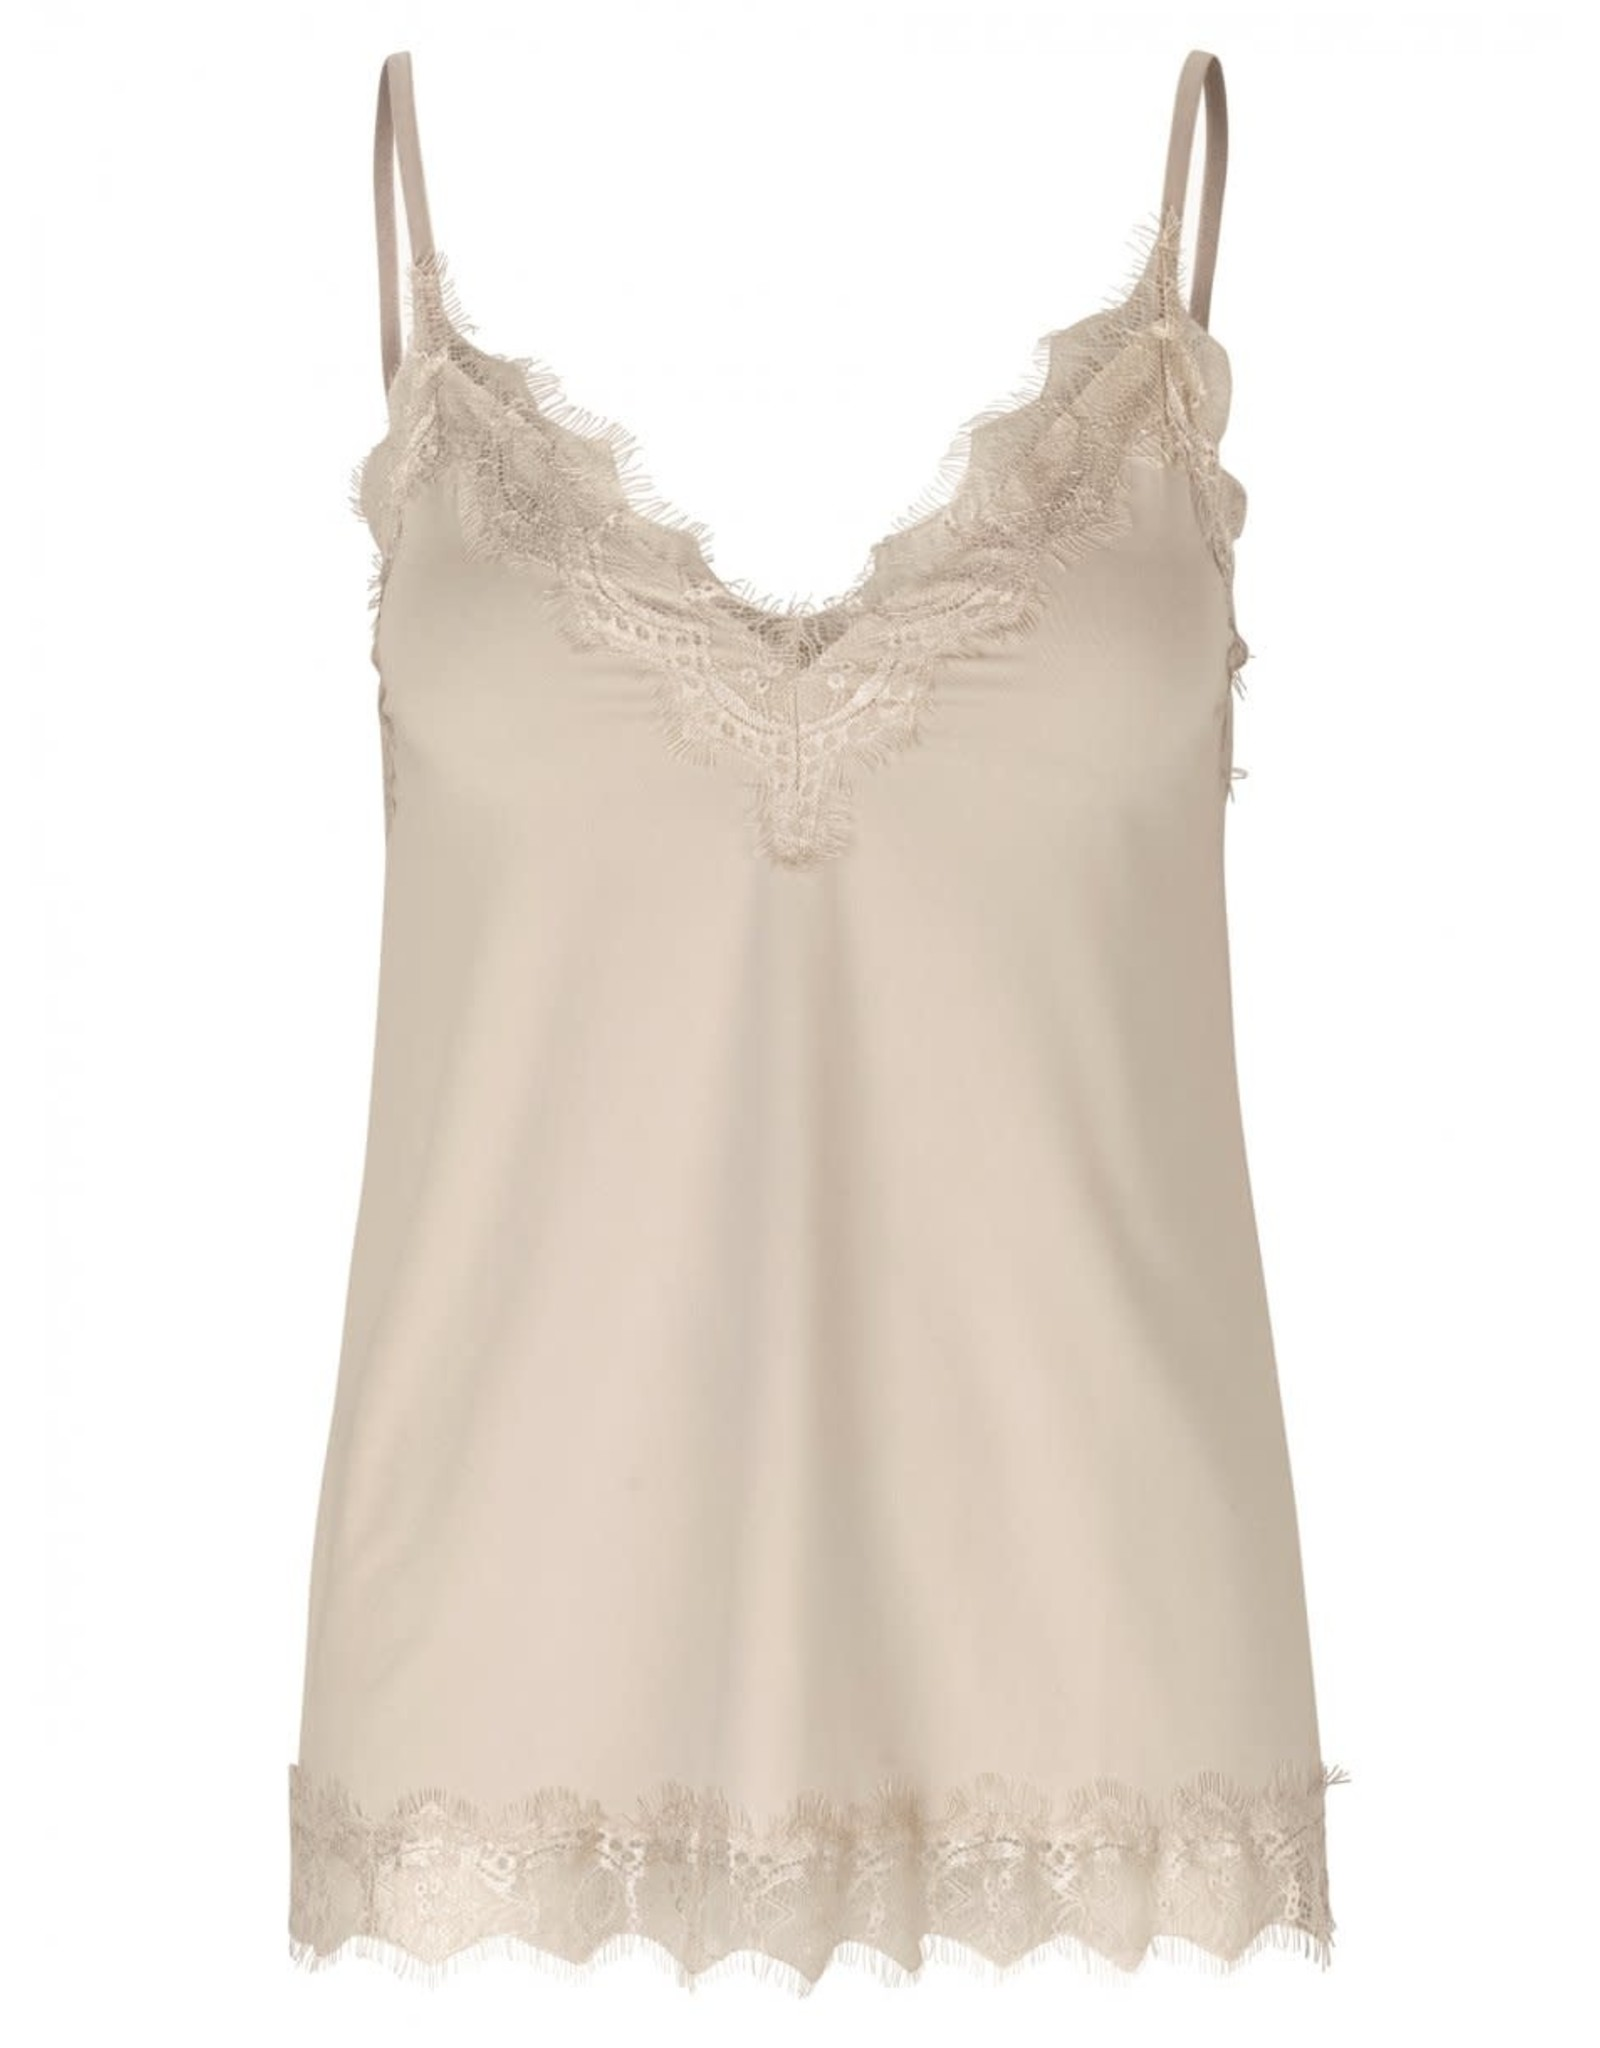 Rosemunde Strap top with Lace - Misty Sand